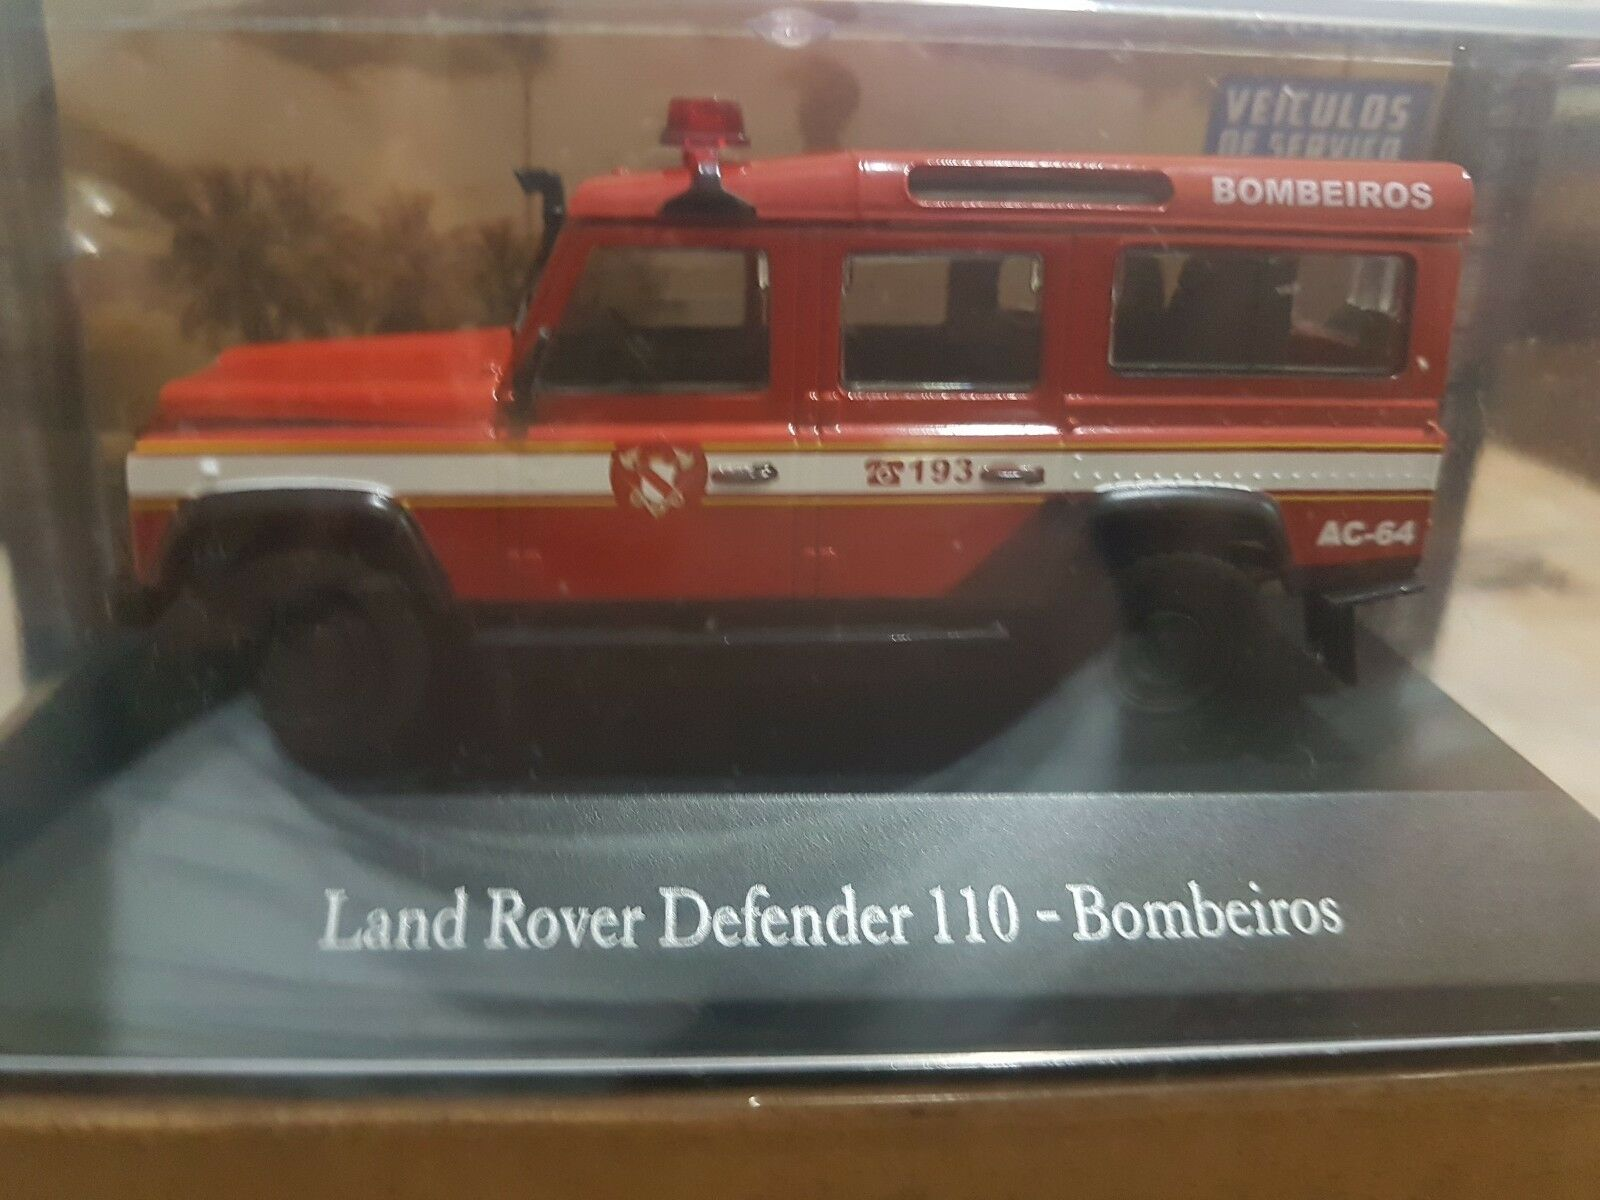 Brazilian Working Cars - Ixo Altaya - Land Rover Defender 110 Fire Department